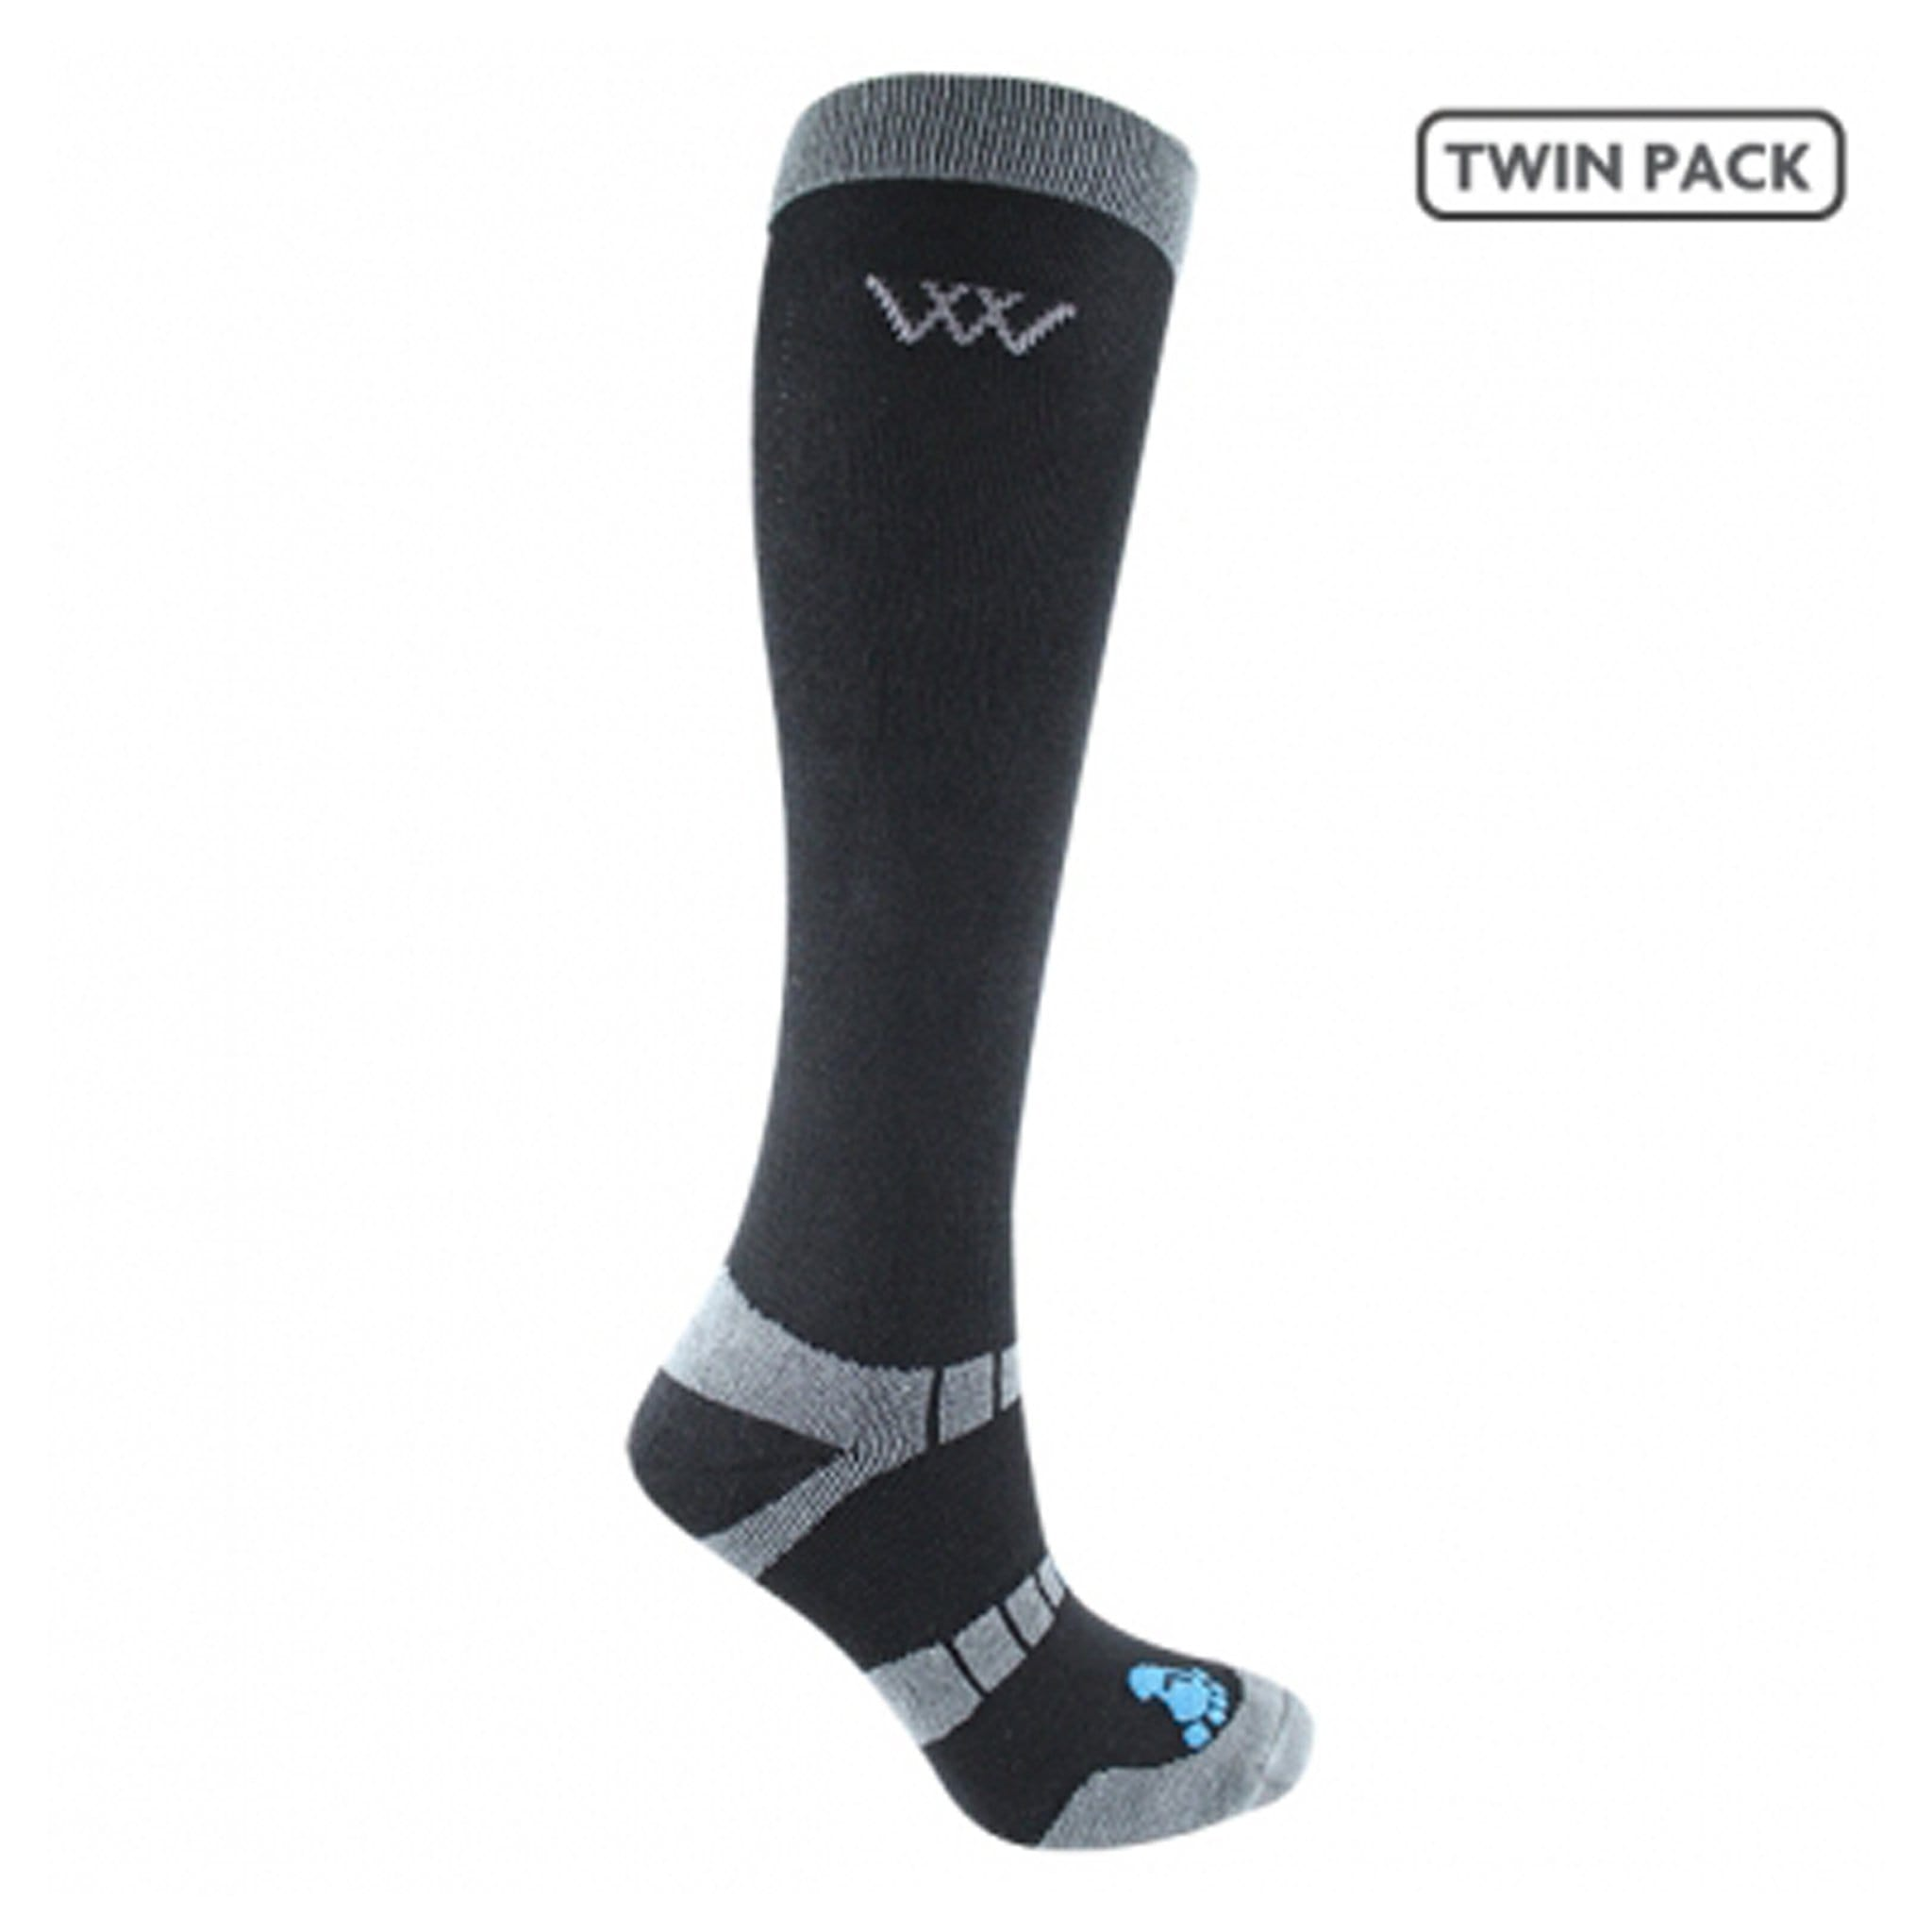 Woof Wear Waffle Knit Bamboo Long Riding Socks 2 Pack Black WW0017.